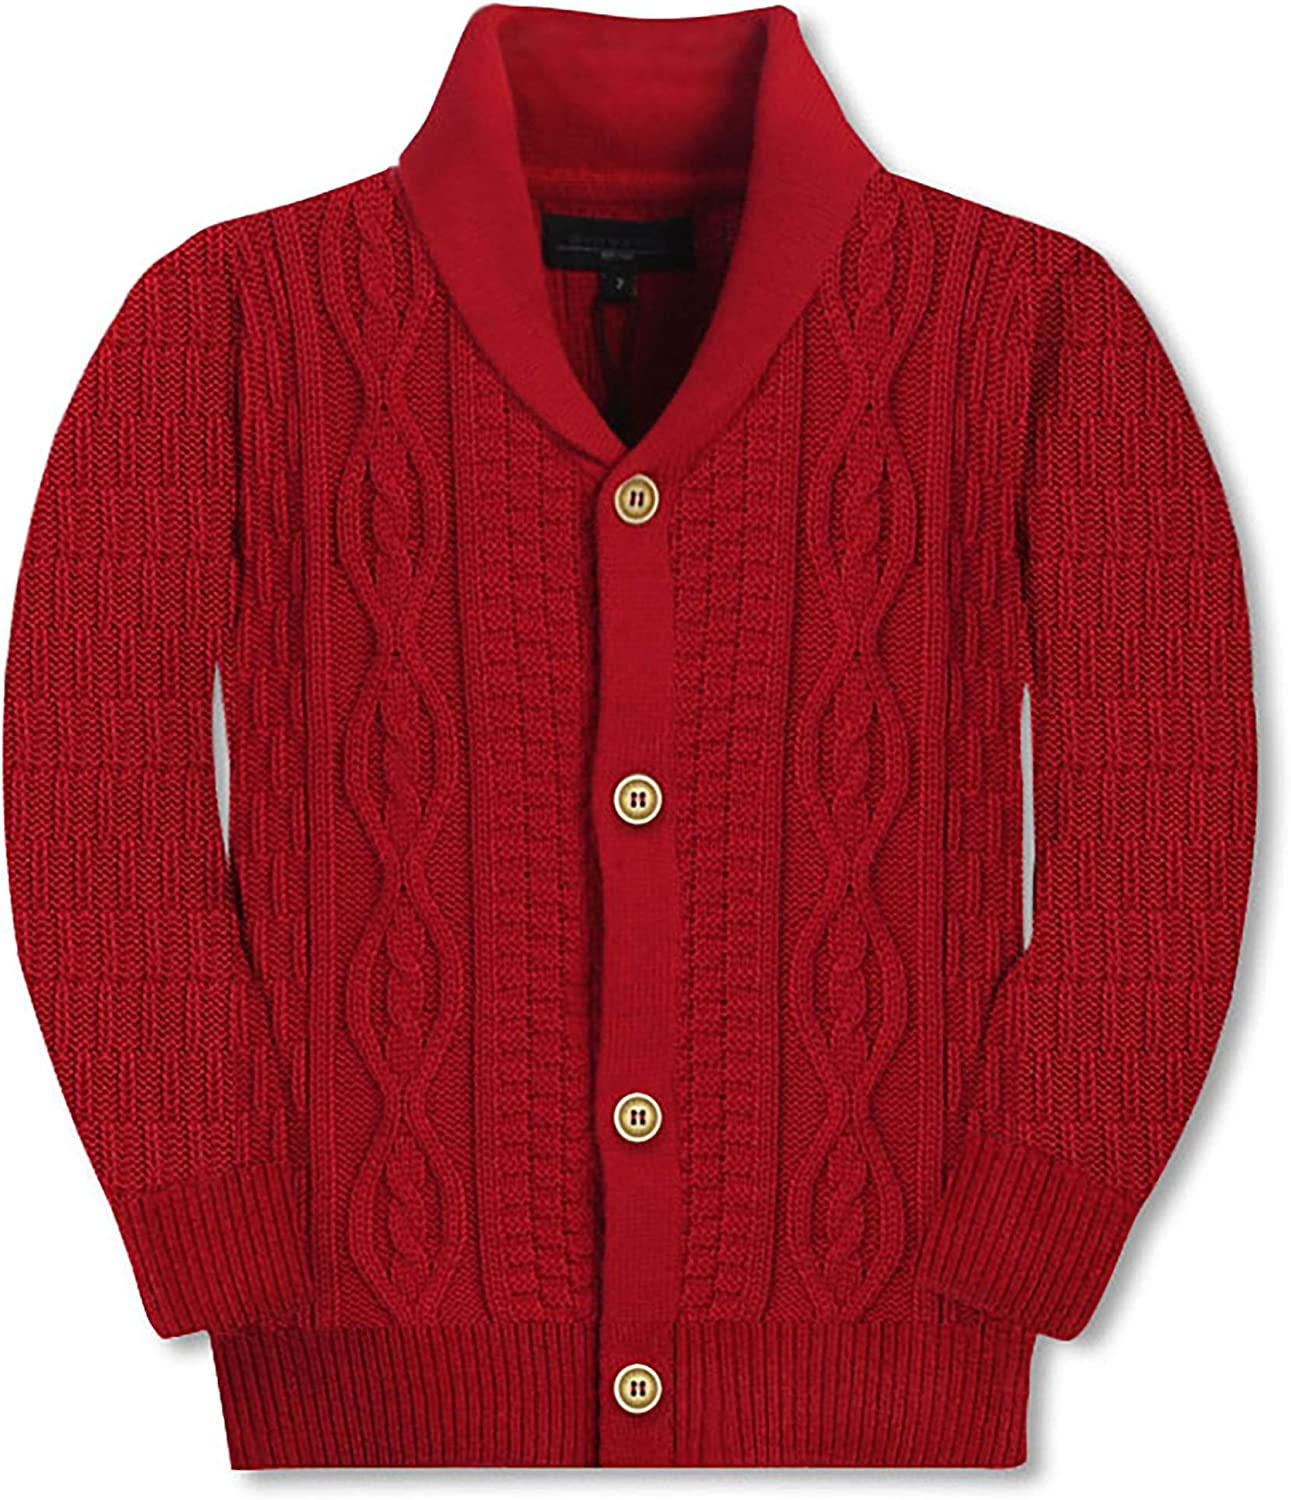 Gioberti Kids and Boys 100/% Cotton Pullover Knitted Sweater with Toggle Button Closure